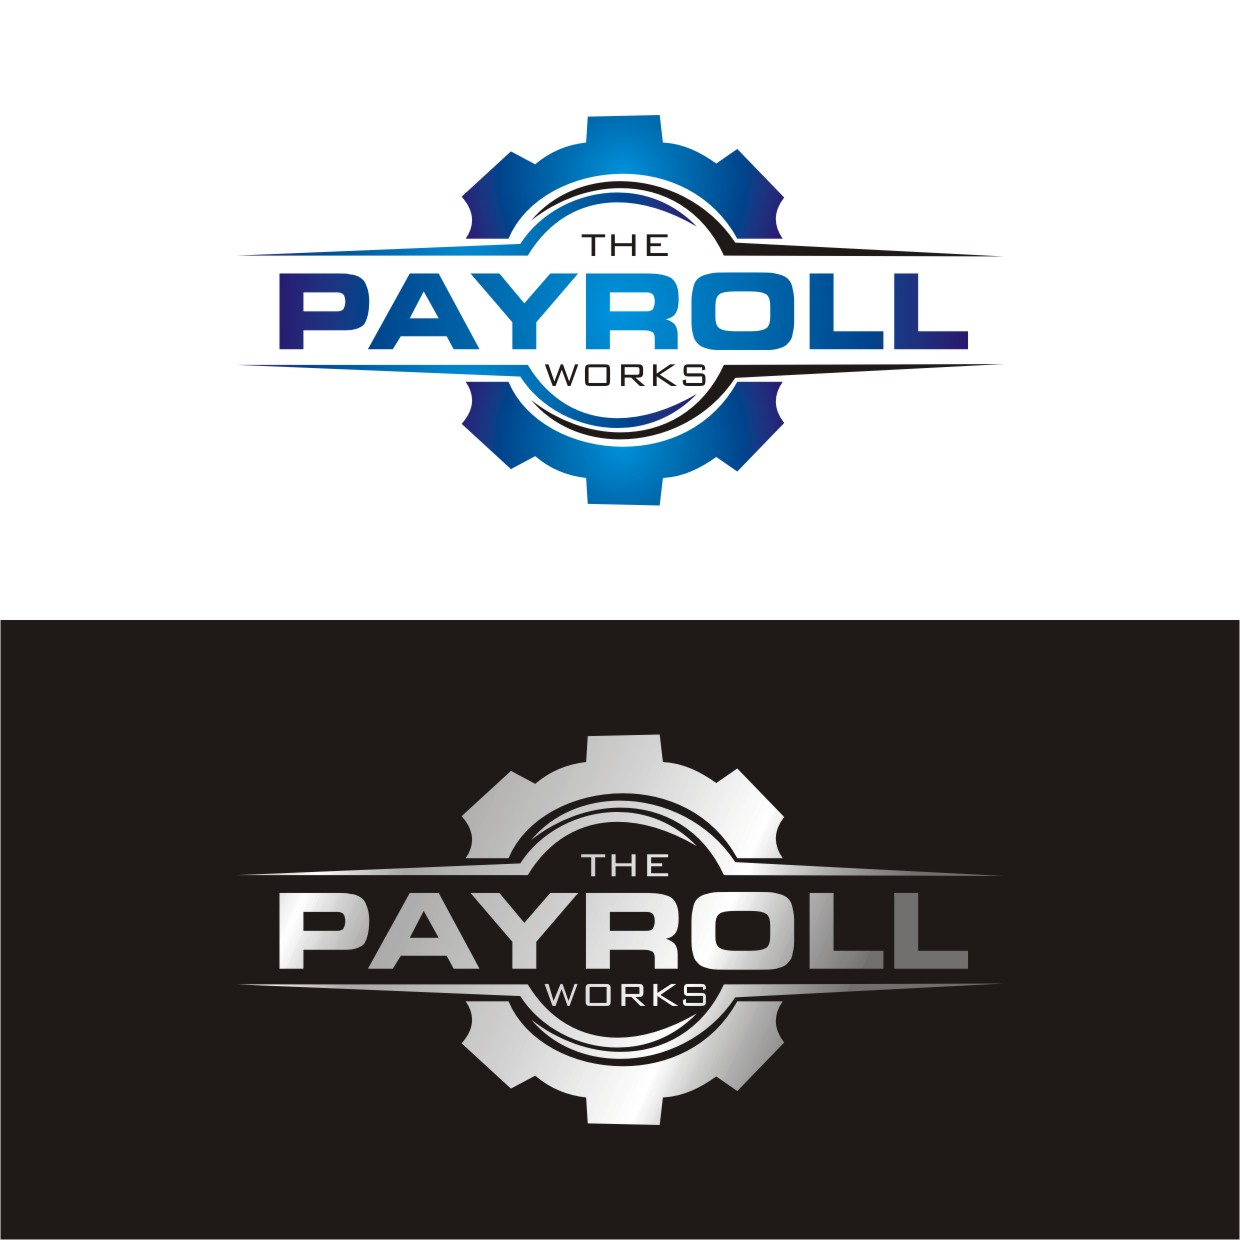 Logo Design by Spider Graphics - Entry No. 130 in the Logo Design Contest Captivating Logo Design for The Payroll Works.